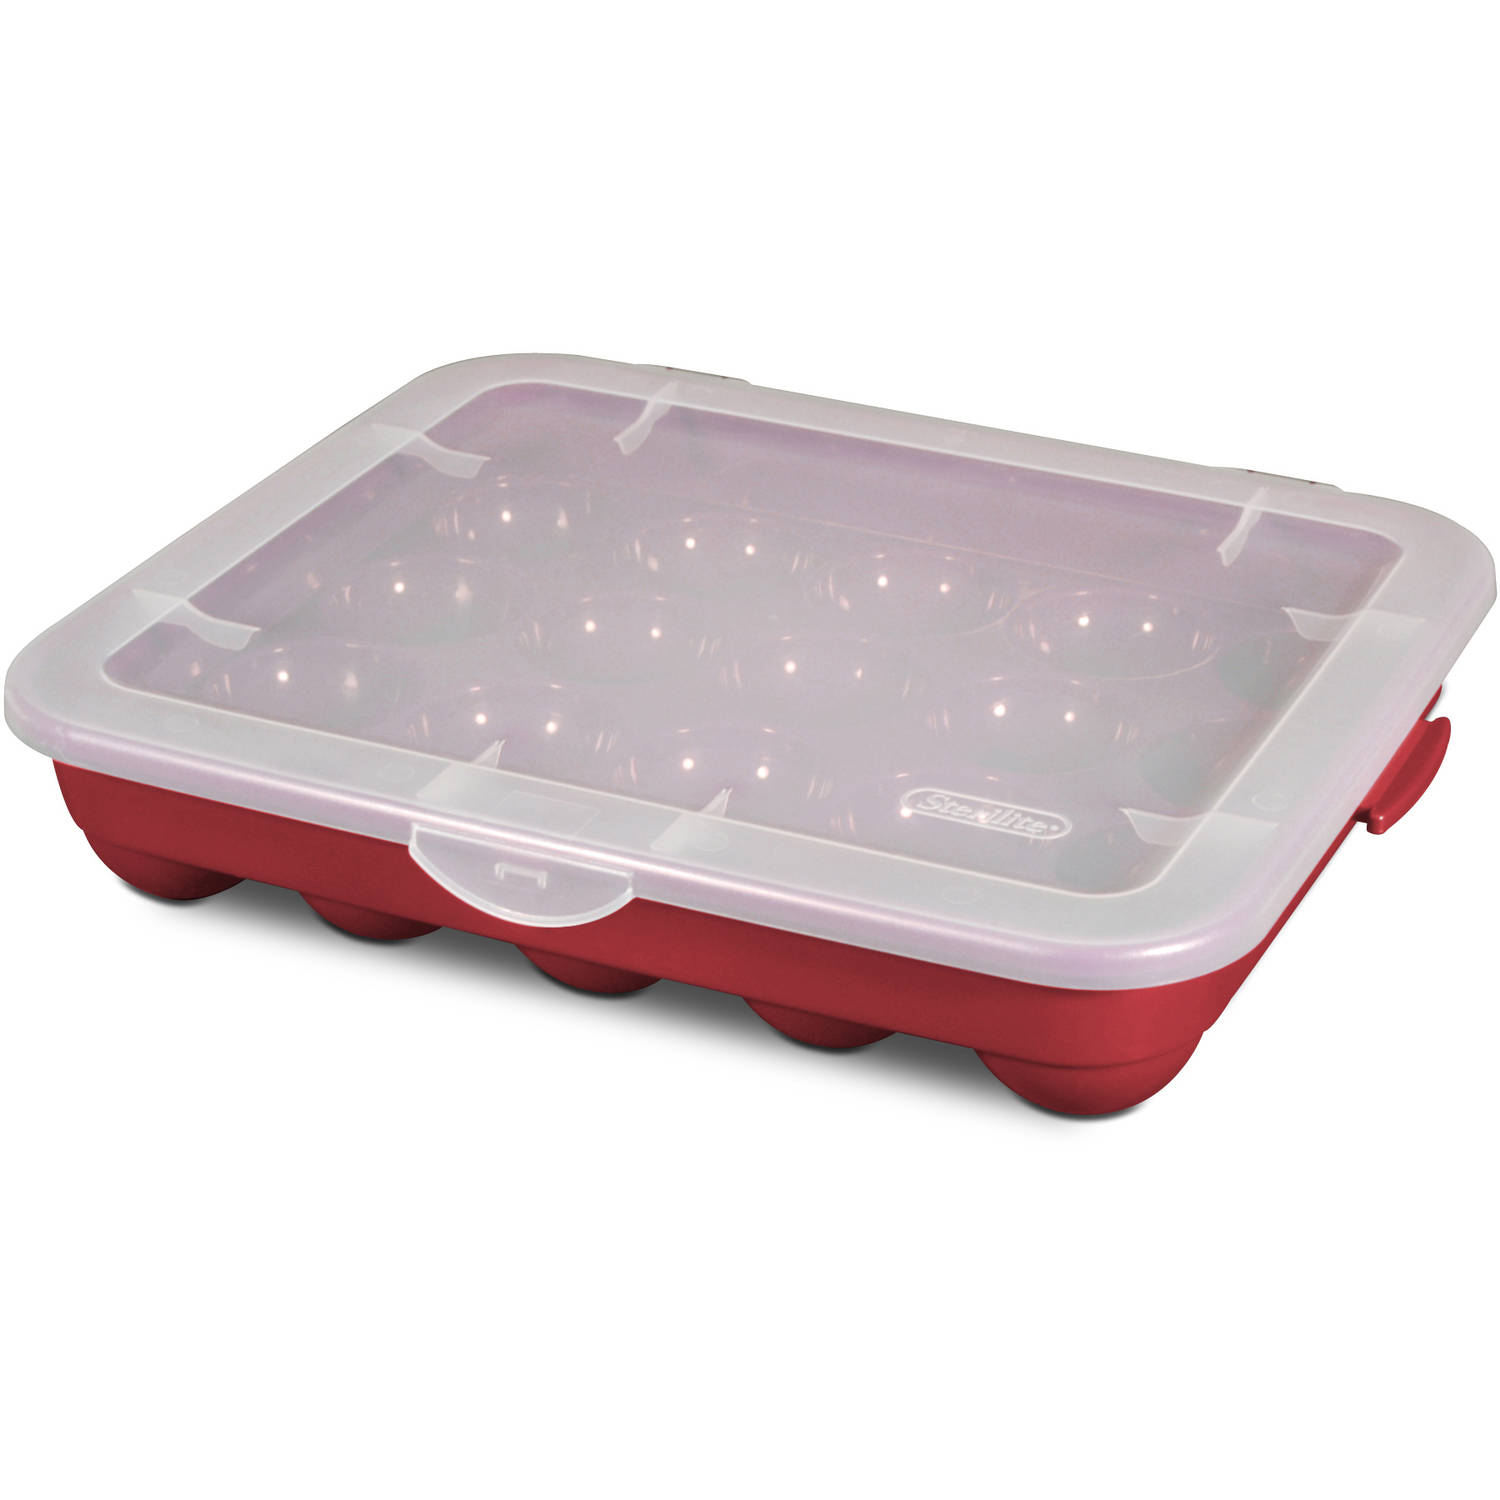 Sterilite Ornament Case, Infra Red (Available in Case of 6 or Single Unit)